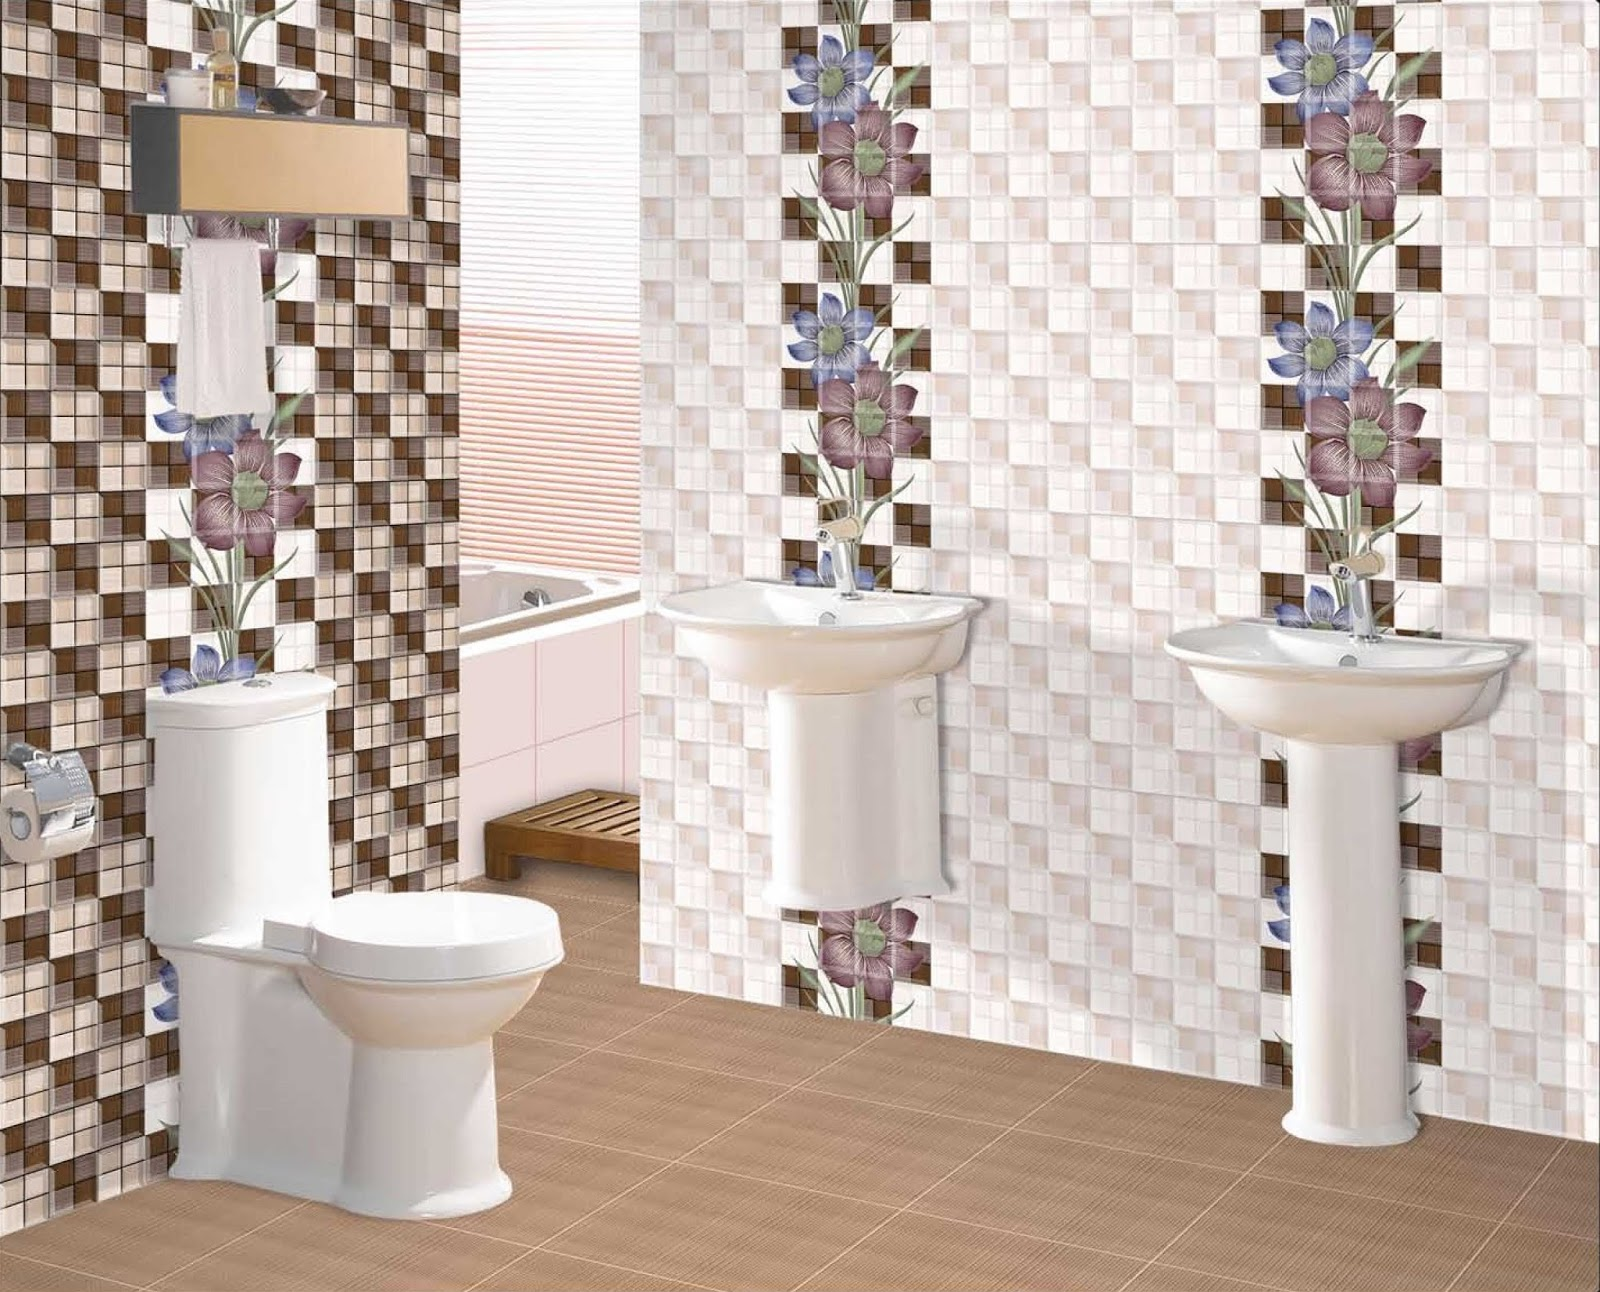 Tiles Hub: Bathroom Ideas - Digital Wall Tiles